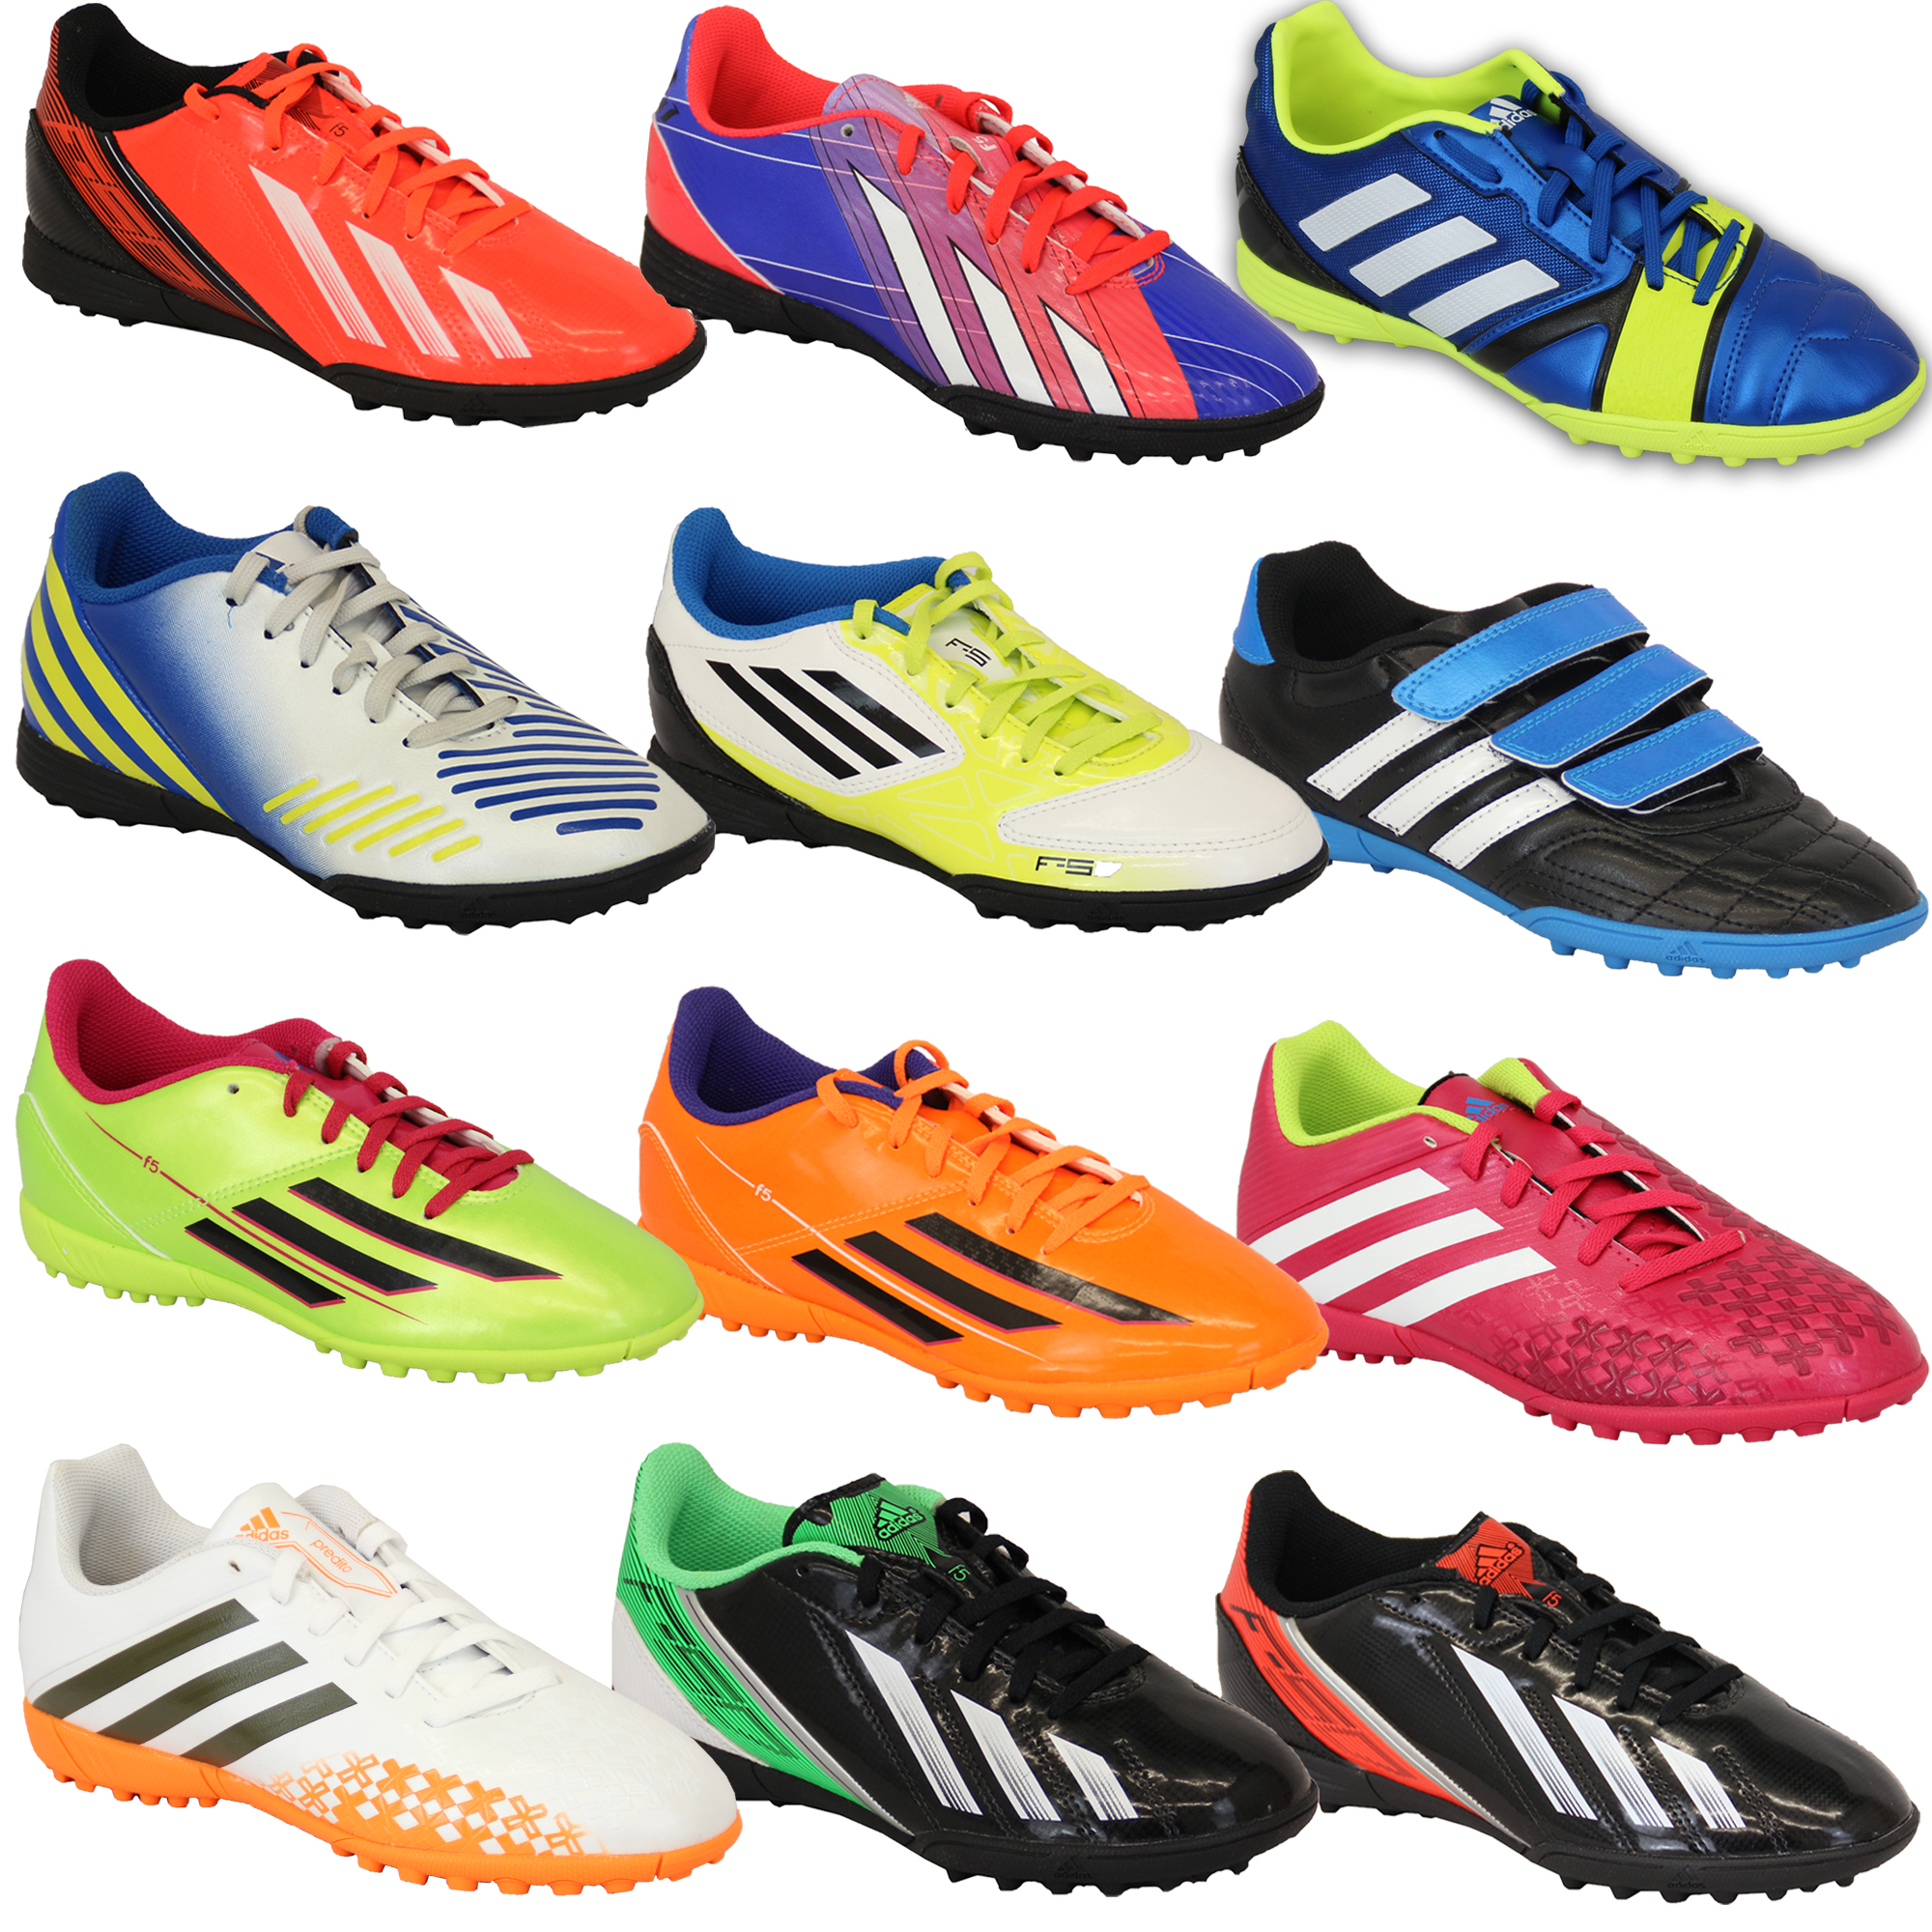 Boys-ADIDAS-Trainers-Kids-Football-Soccer-Astro-Turf-Shoes-Lace-Up-Neon-Youth thumbnail 20